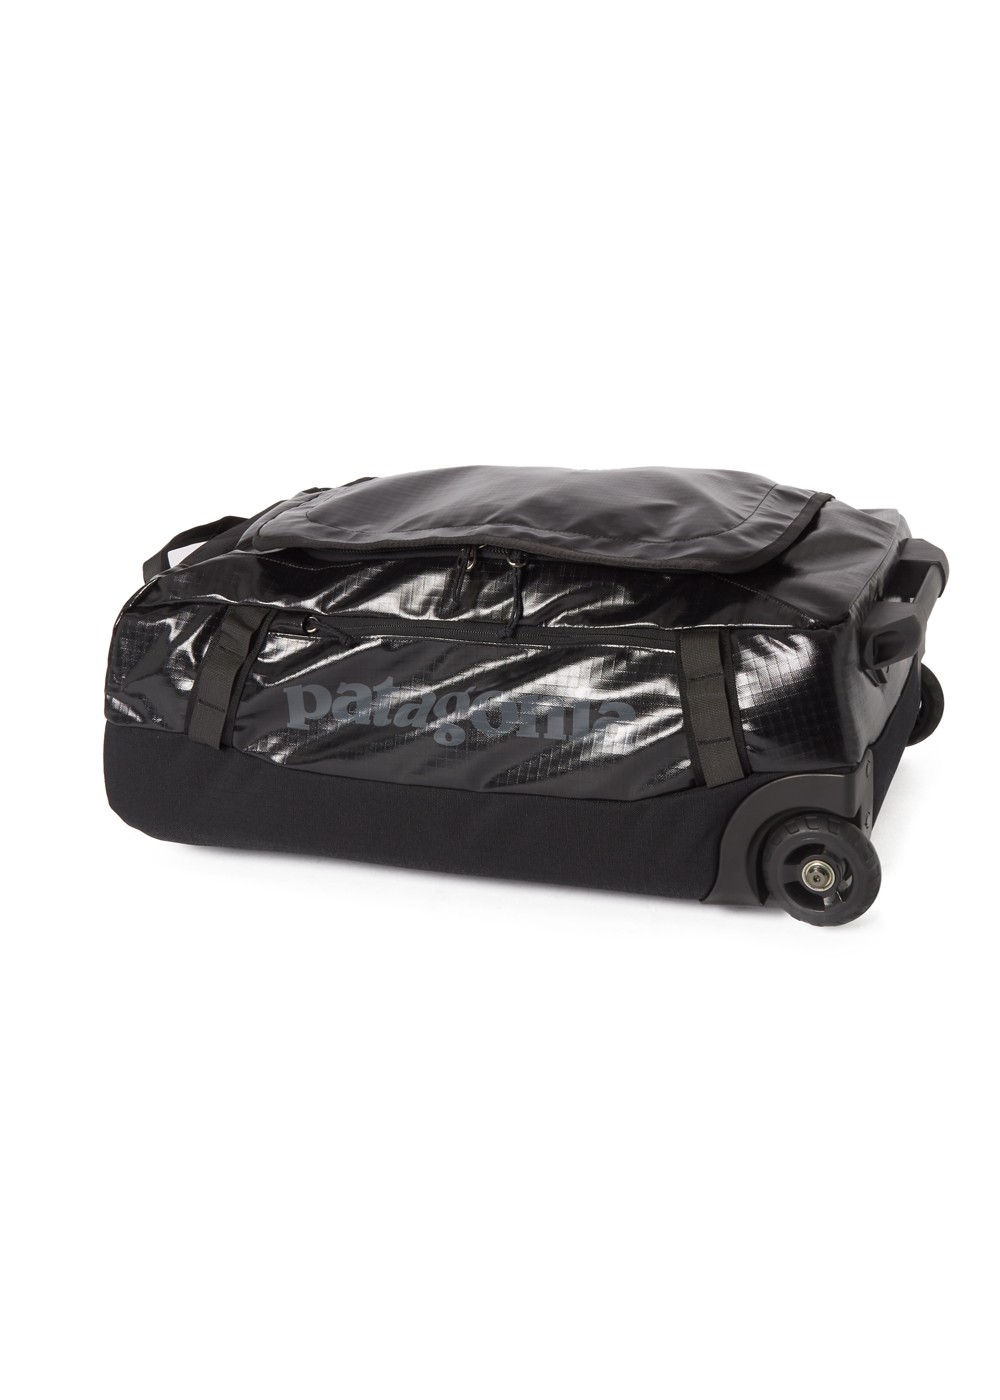 【最大23%OFF】BLACK HOLE WHEELED DUFFEL 40L|BLACK|キャリーバッグ|Patagonia